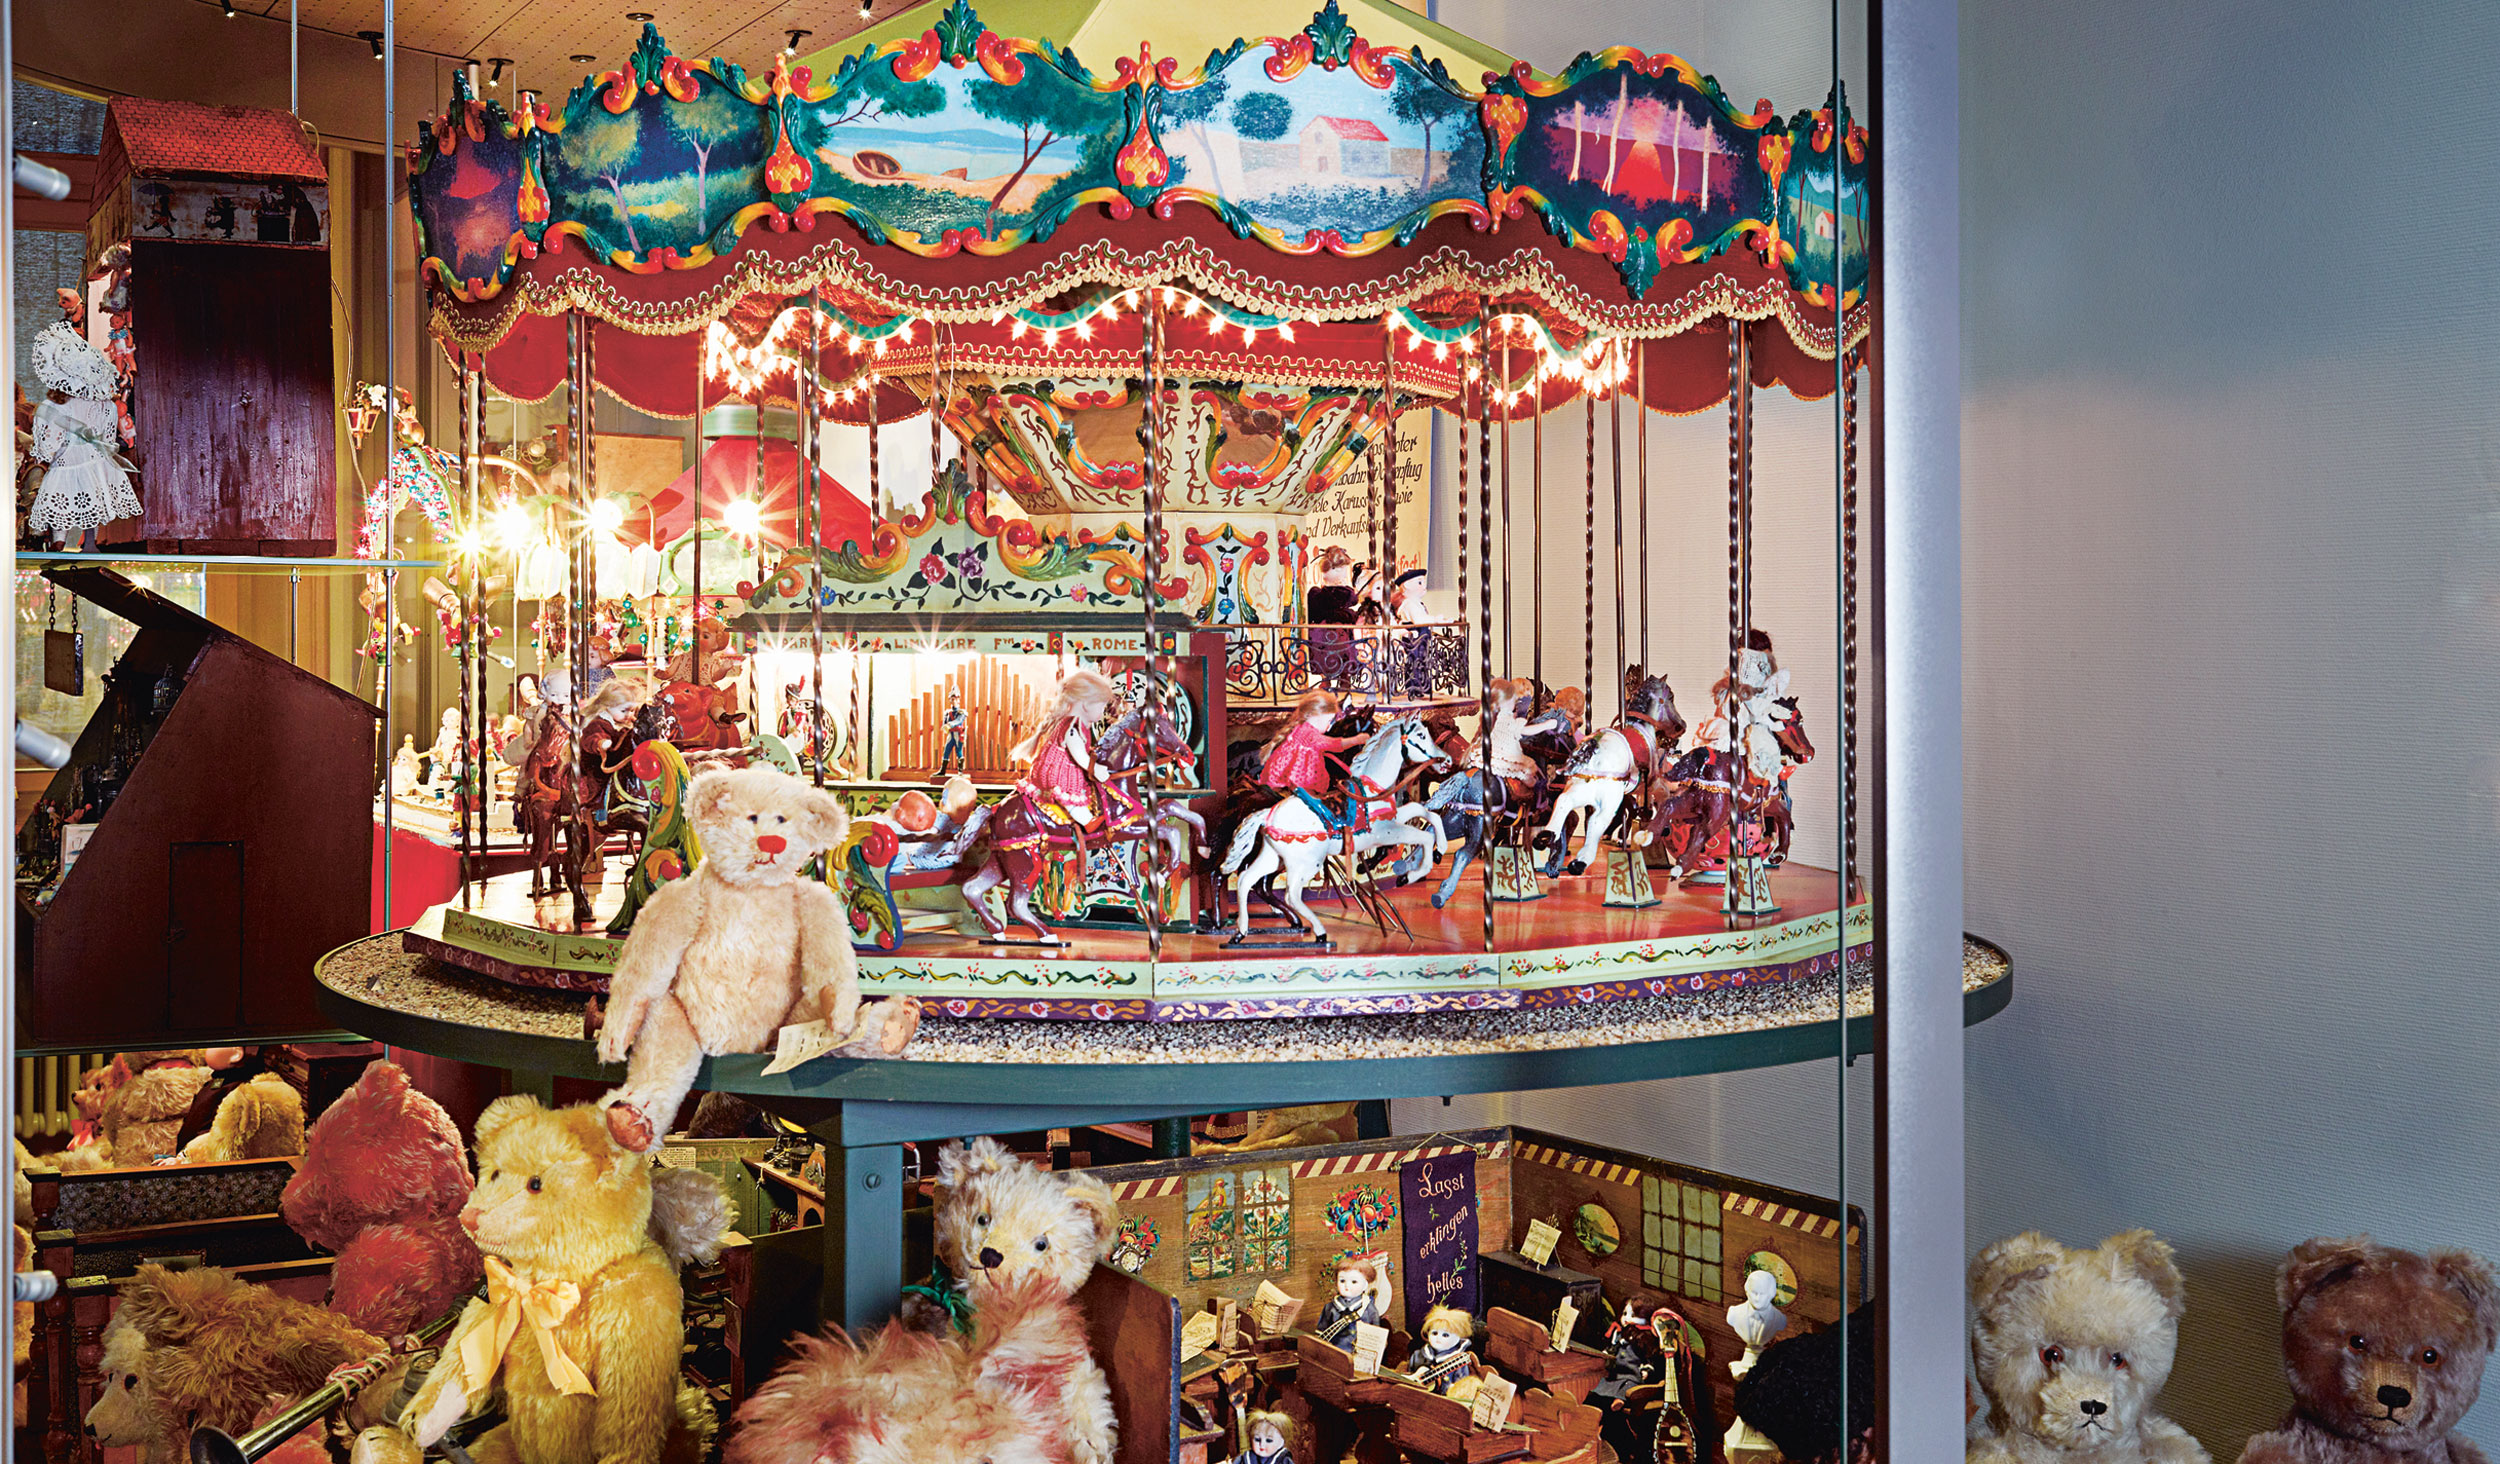 This image shows a toy Carousel wheel with old and dated toys and teddys around.